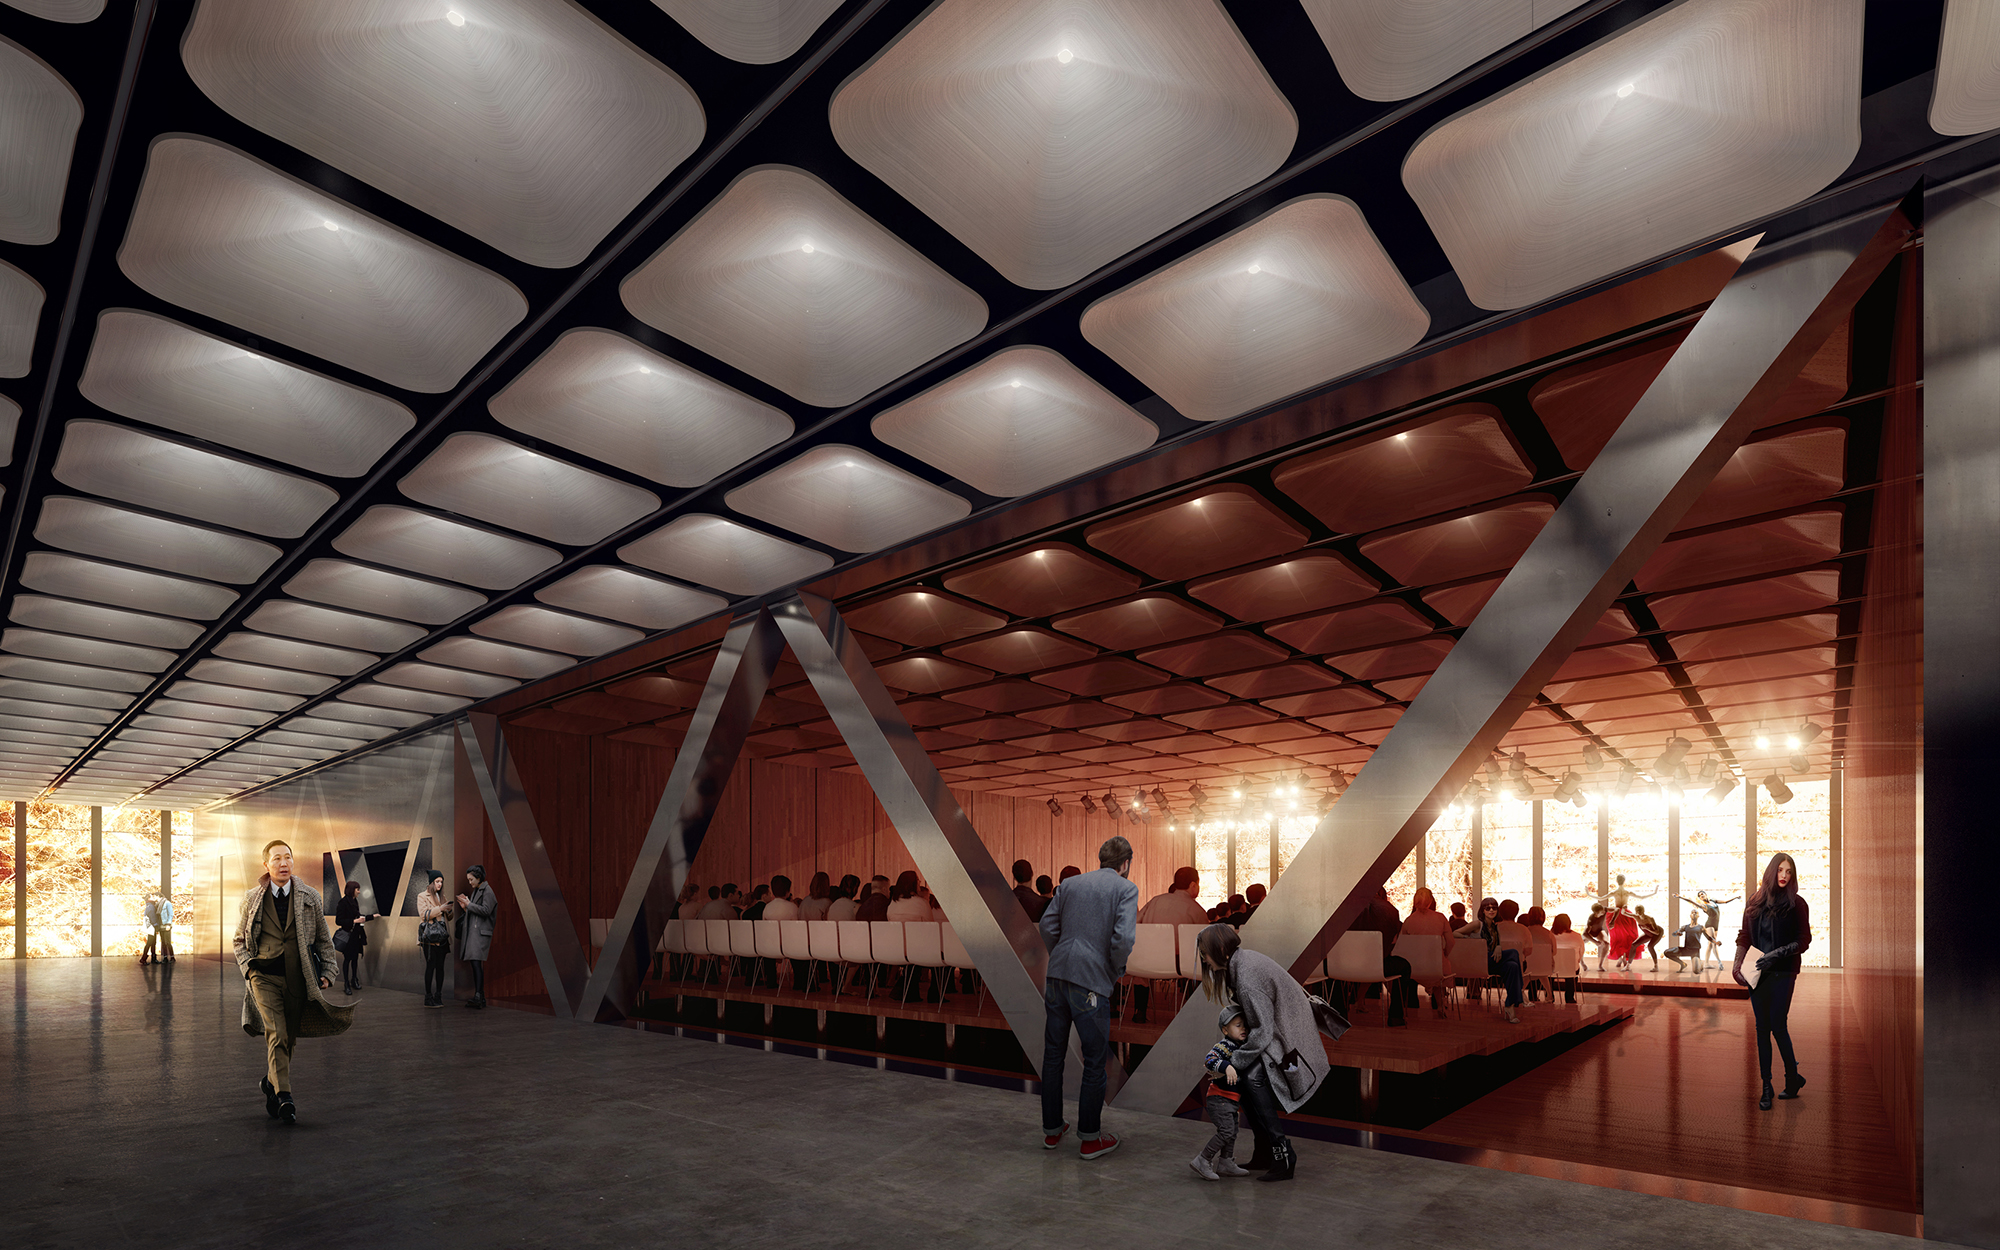 Rendering of community cabaret configuration of the lobby level restaurant at the Ronald O. Perelman Performing Arts Center at the World Trade Center. Rendering by Luxigon